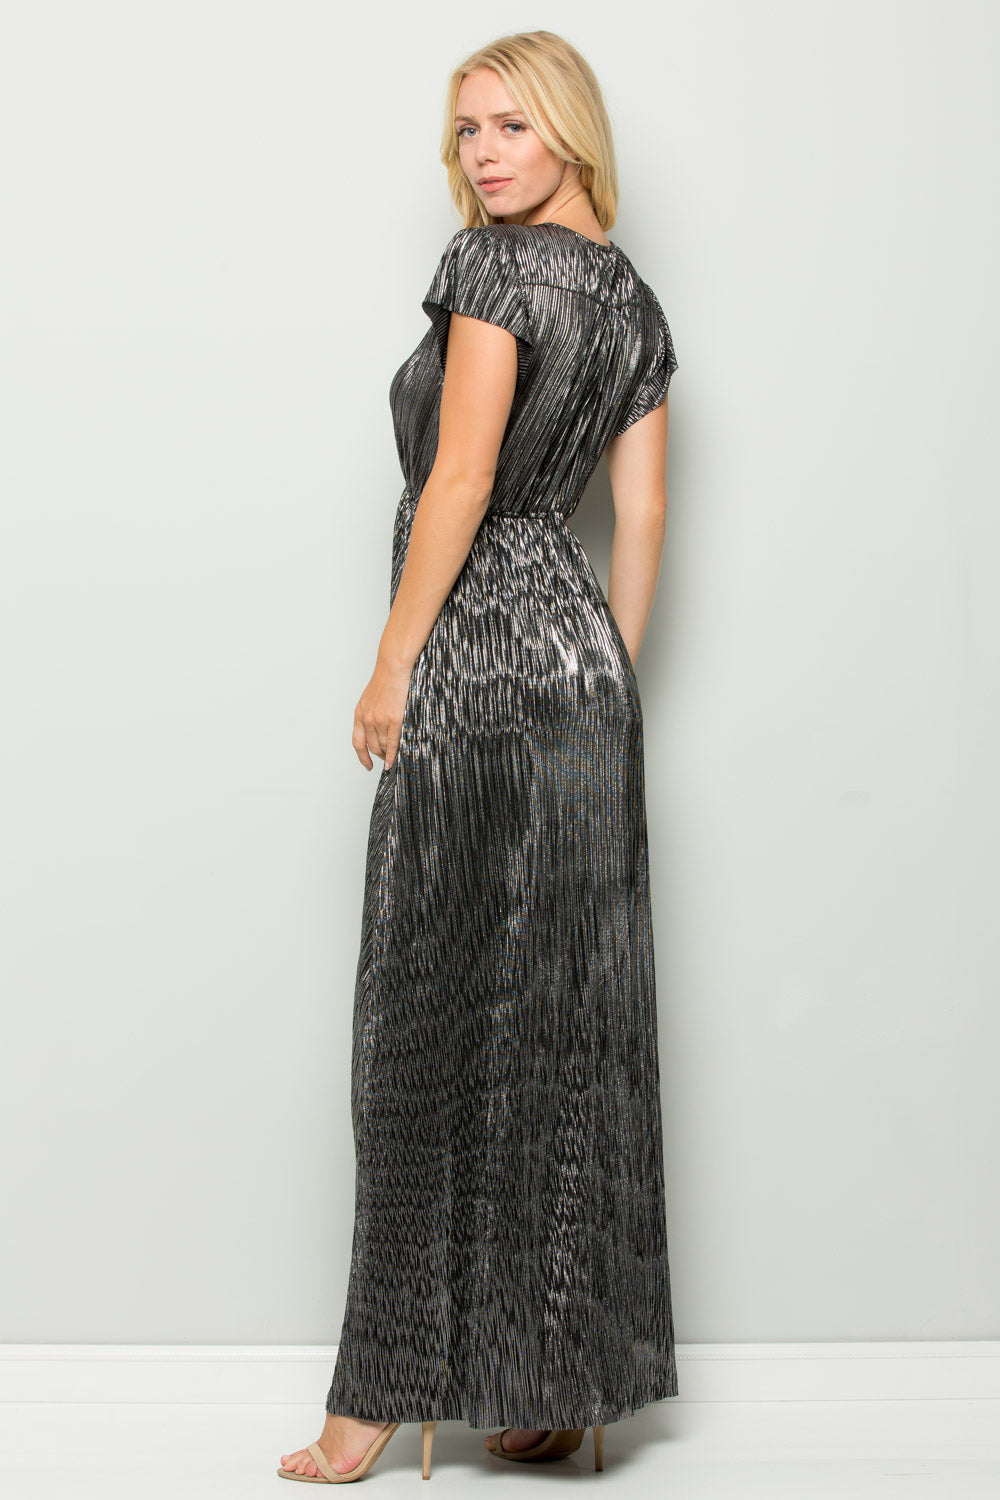 D5112 Metallic Pleats Maxi Dress - Black/Silver